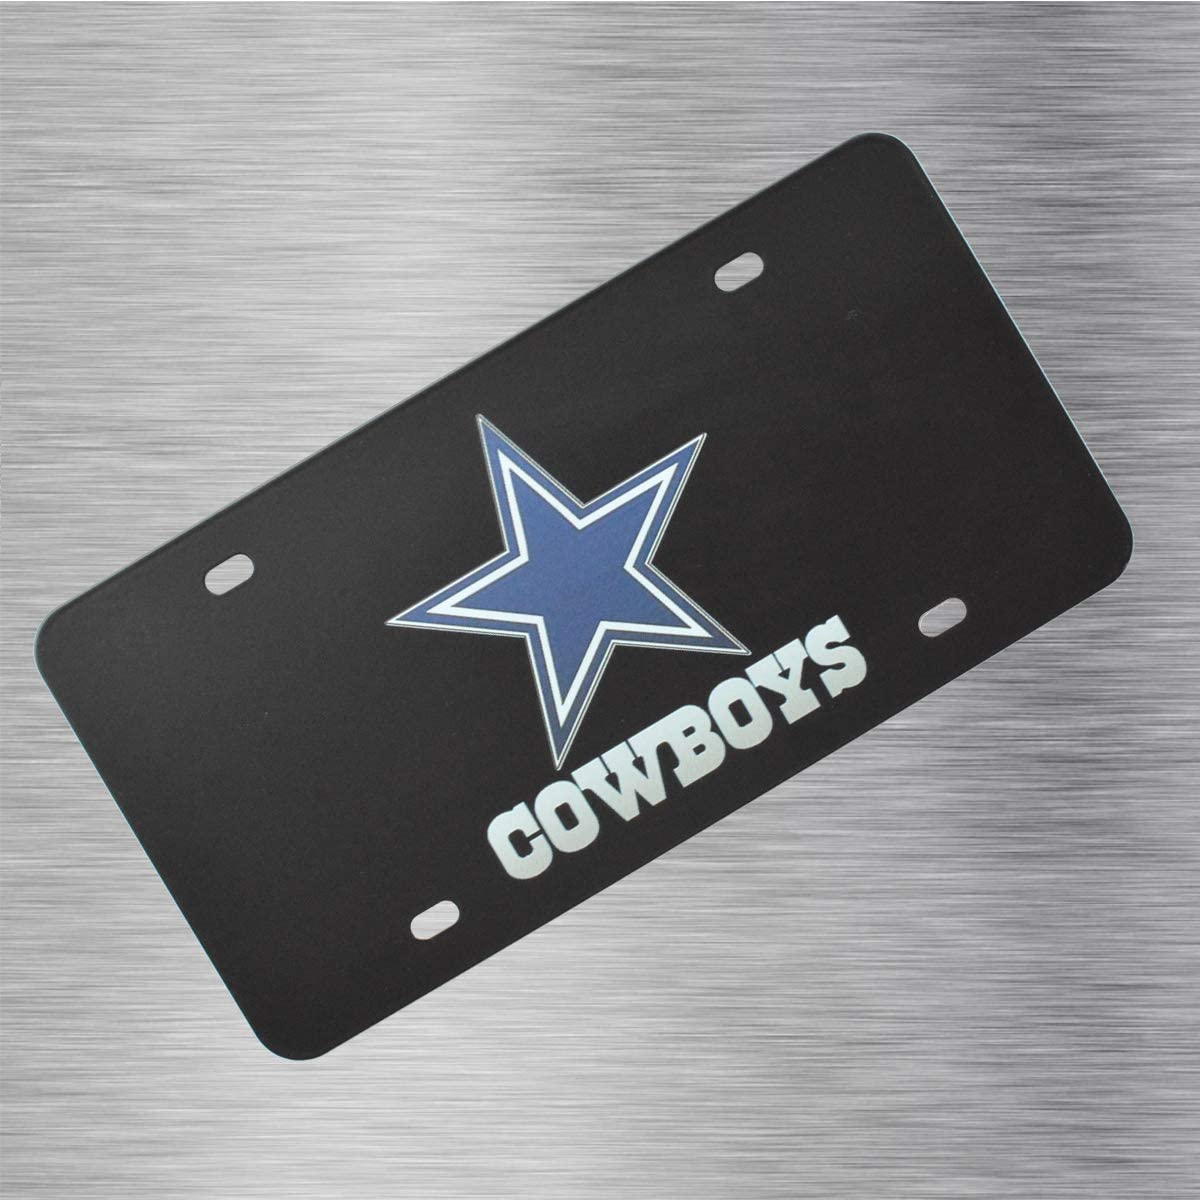 Dallas Cowboys CAR FAN Dallas Cowboys Team Logo Aluminum License Plate Cover,for Toyota BMW Mercedes Benz Chevrolet Buick Cadillac Ford Honda Mazda Lexus Hyundai Kia Nissan